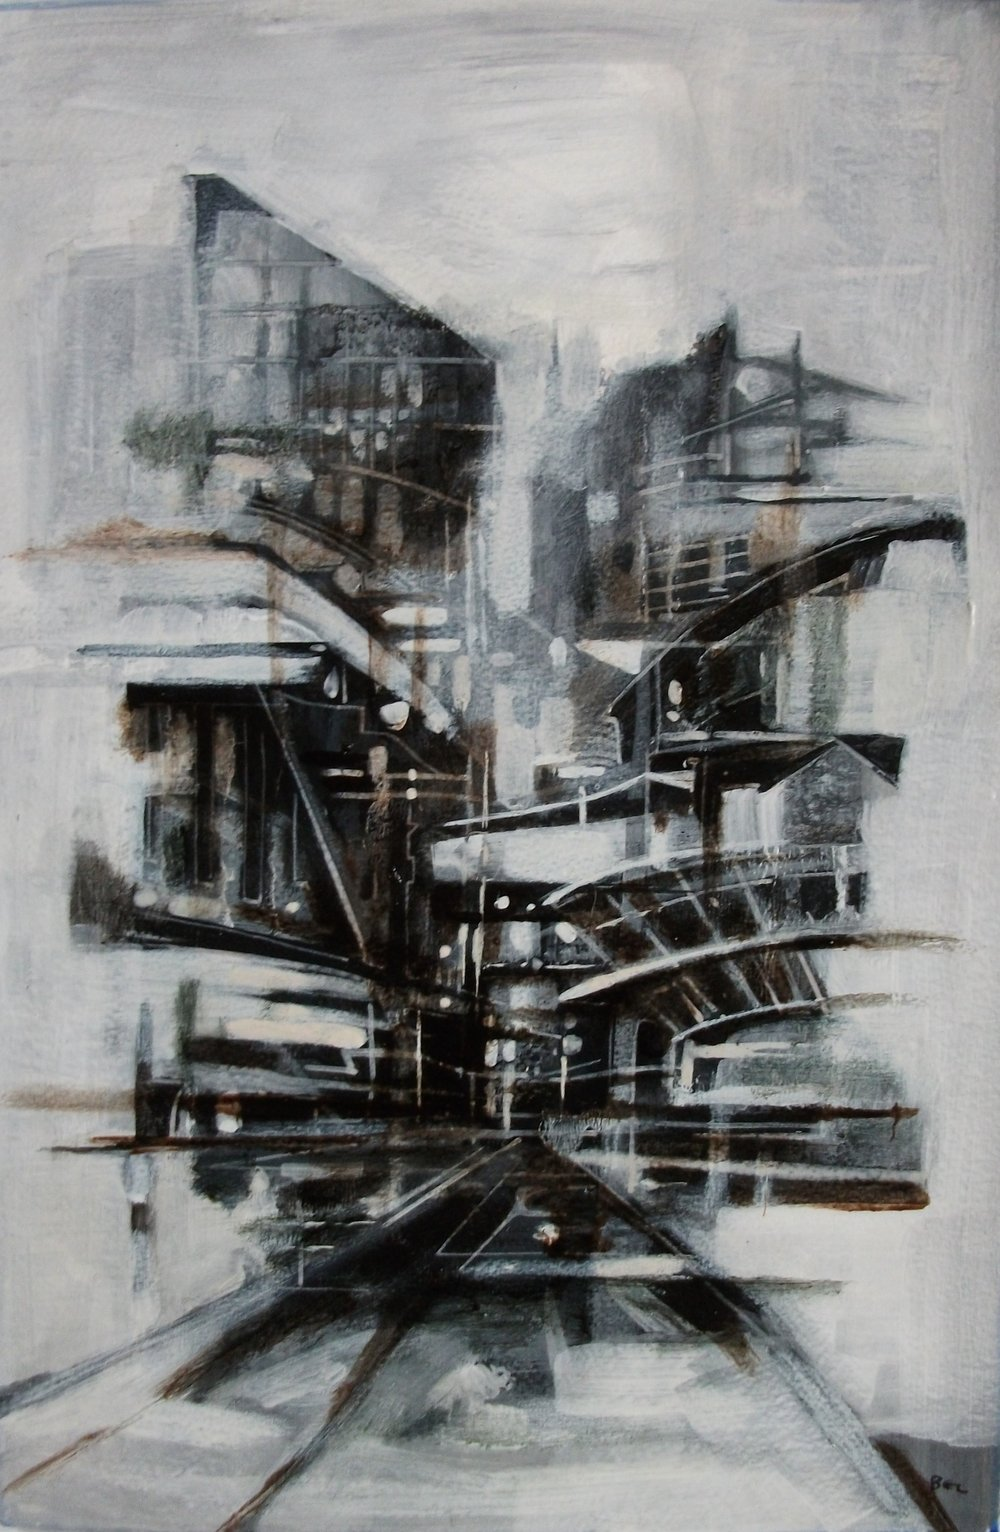 "'Cityscape V' ,  Code no. 2677   Acrylics & Mixed Media on Paper with Oil Glazing, 18"" x 12"""